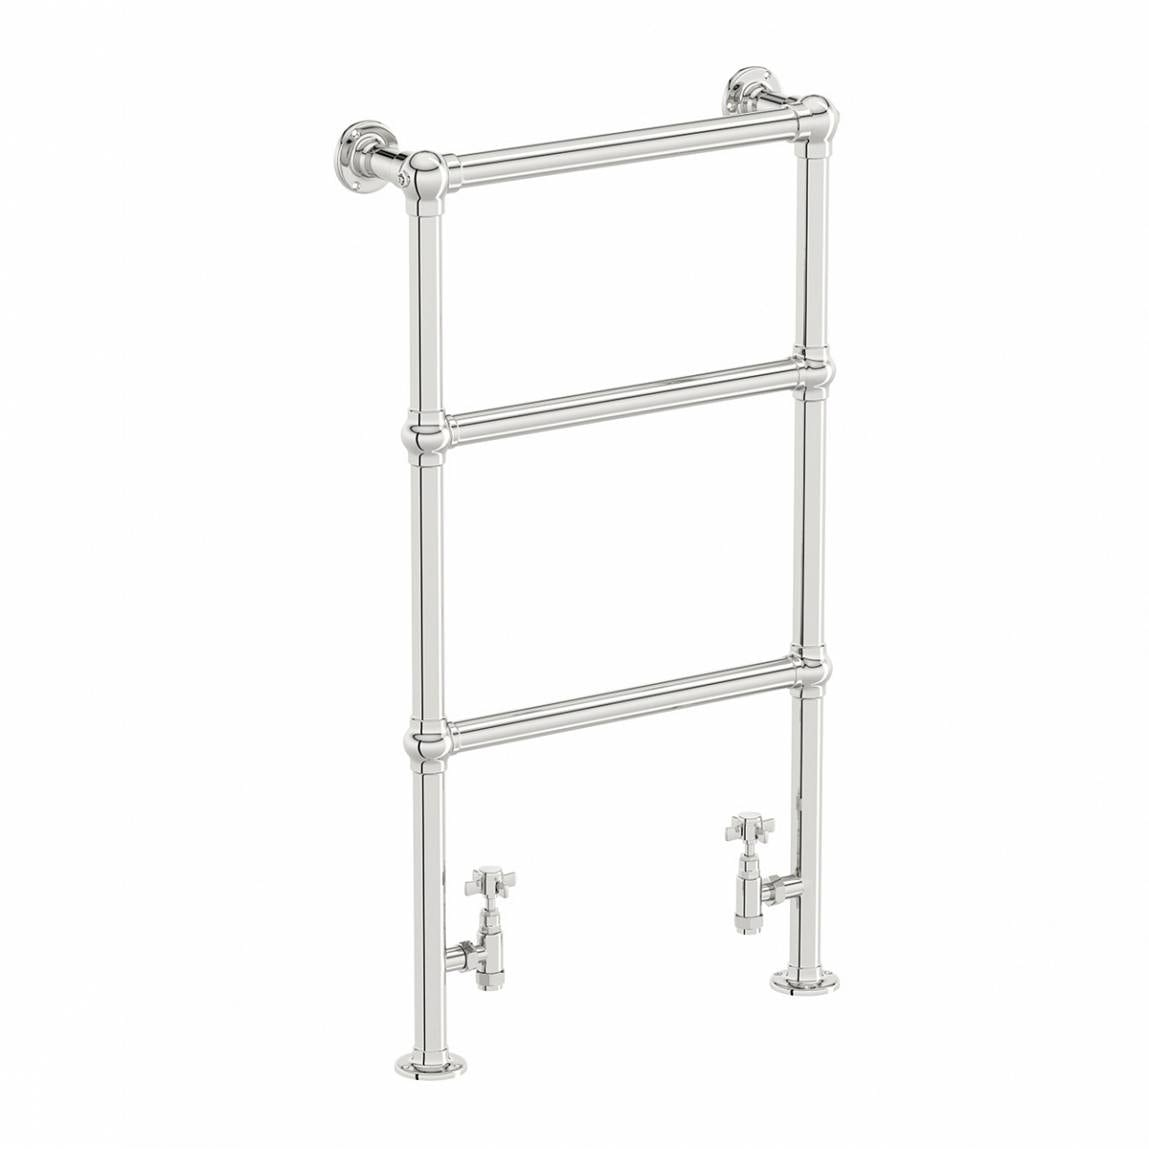 The Bath Co. Winchester heated towel rail 914 x 535 offer pack